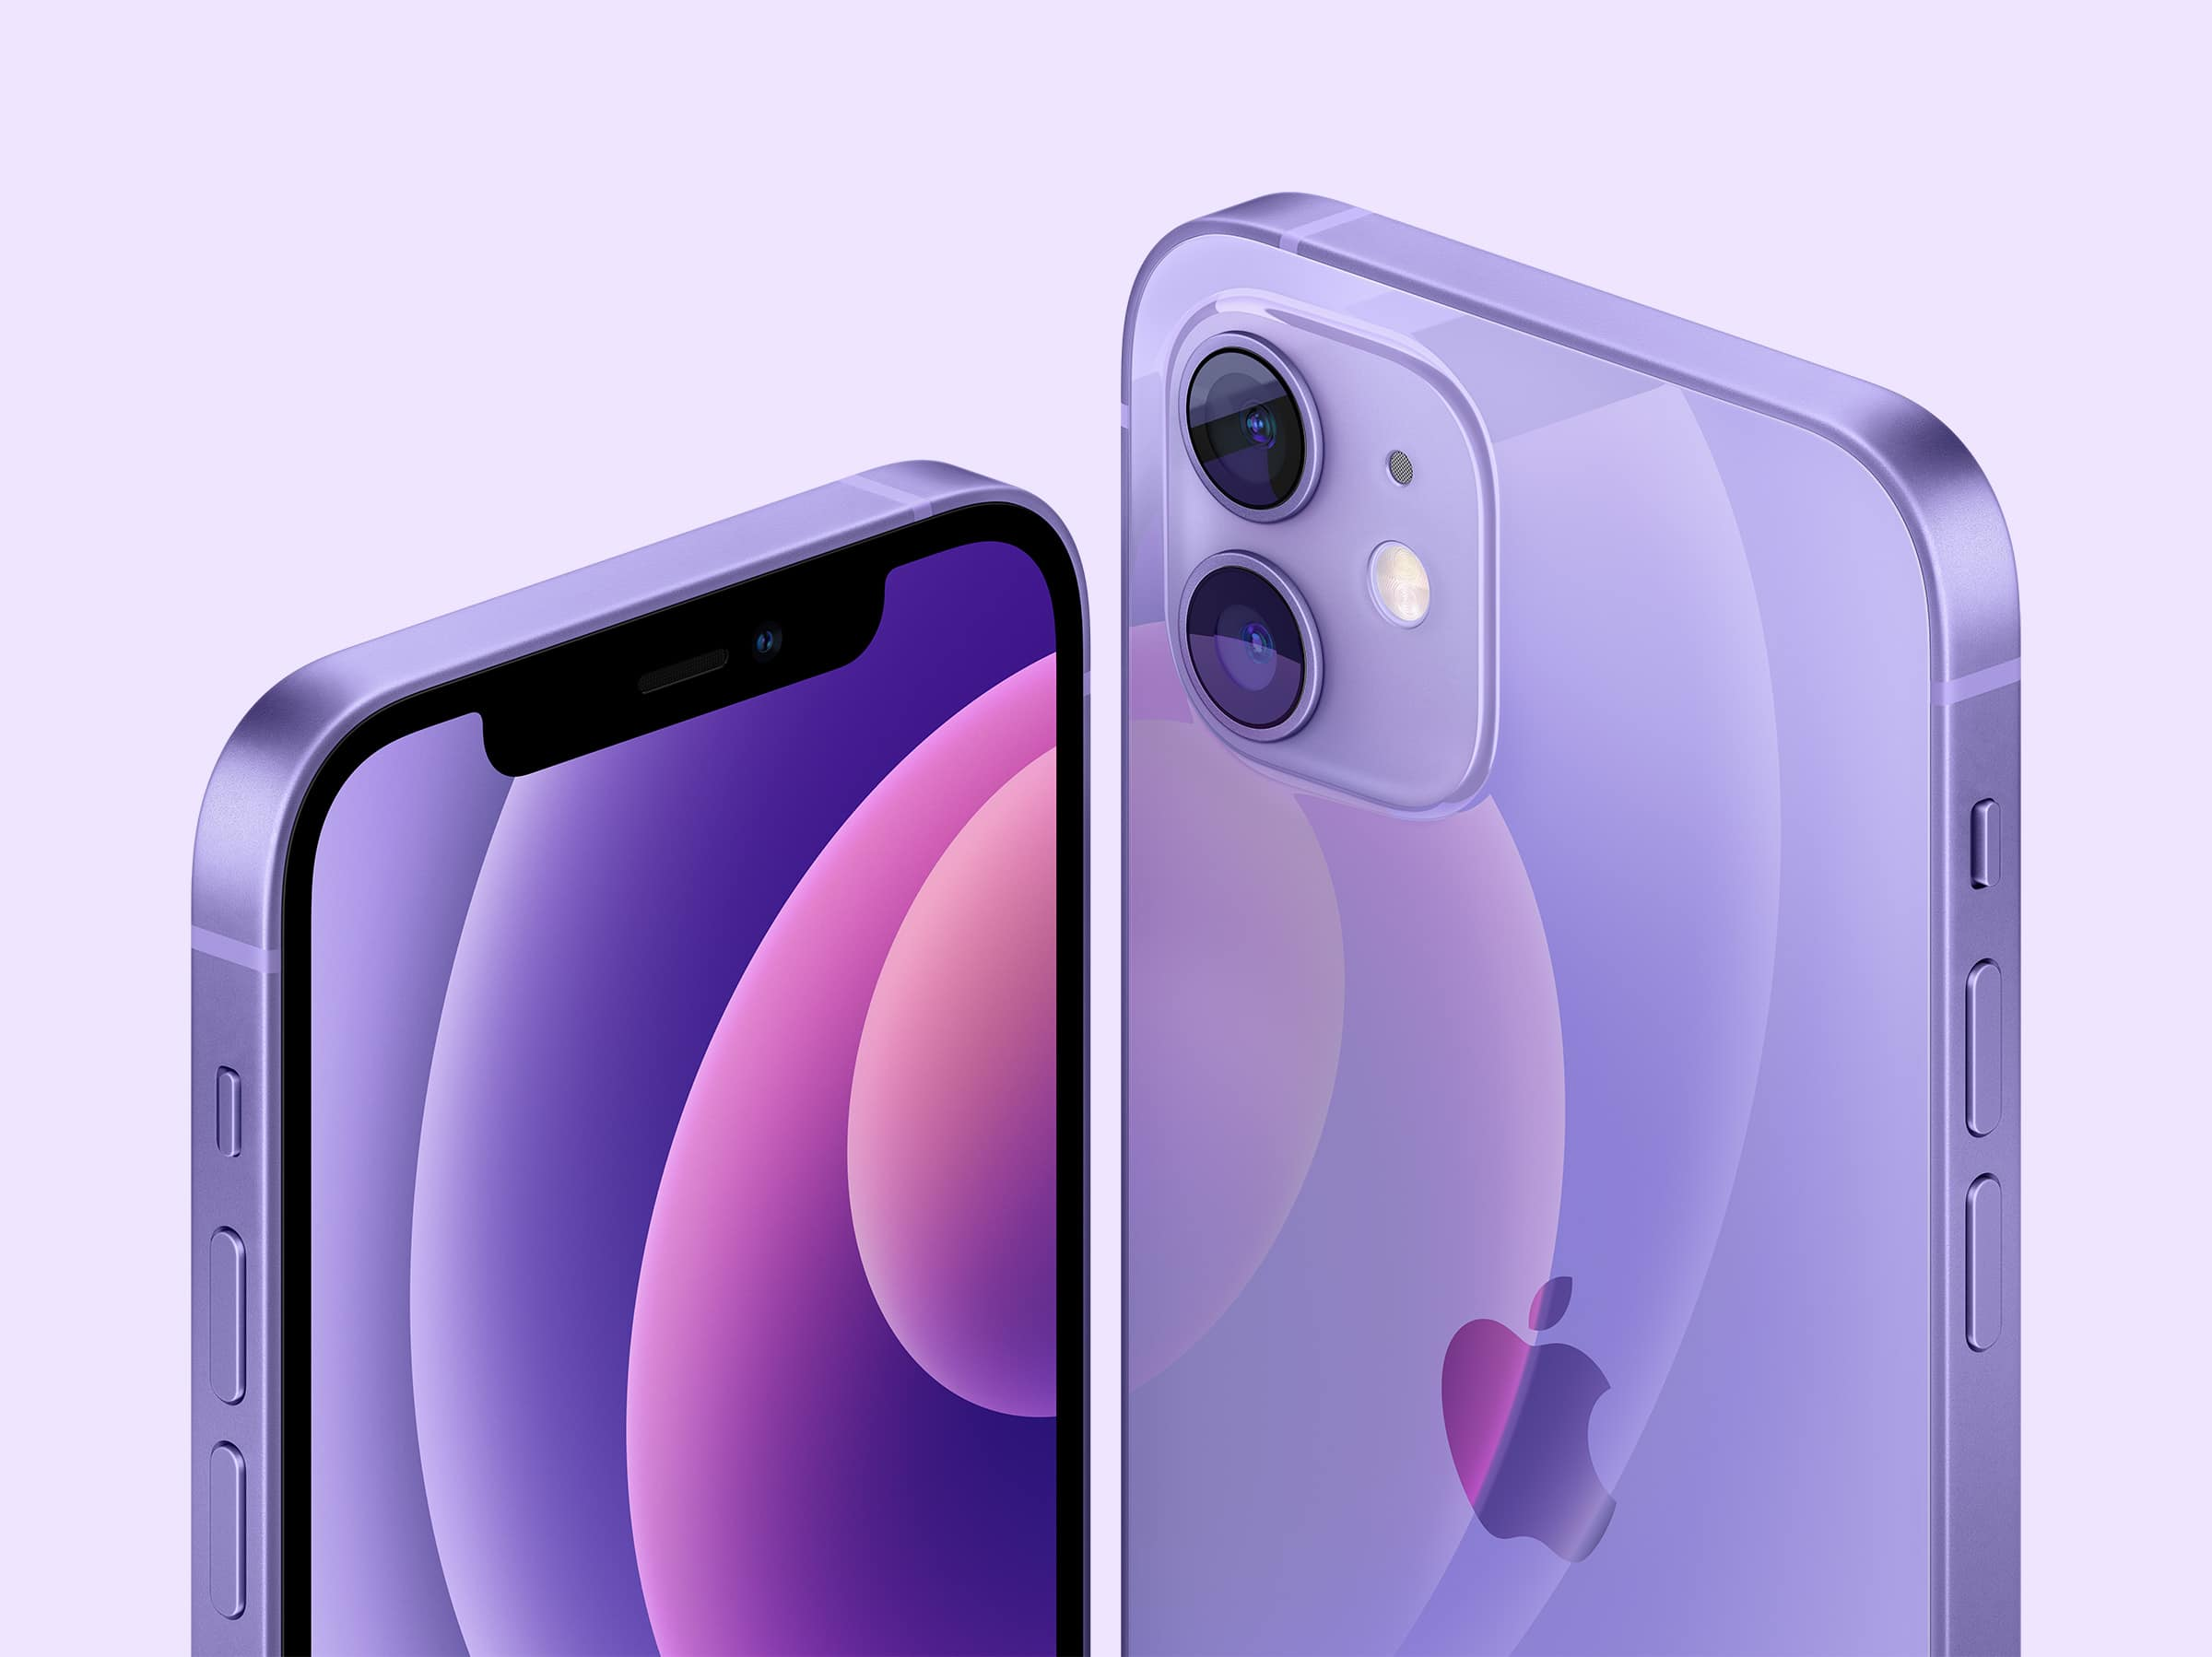 The iPhone 12 and 12 mini now come in purple